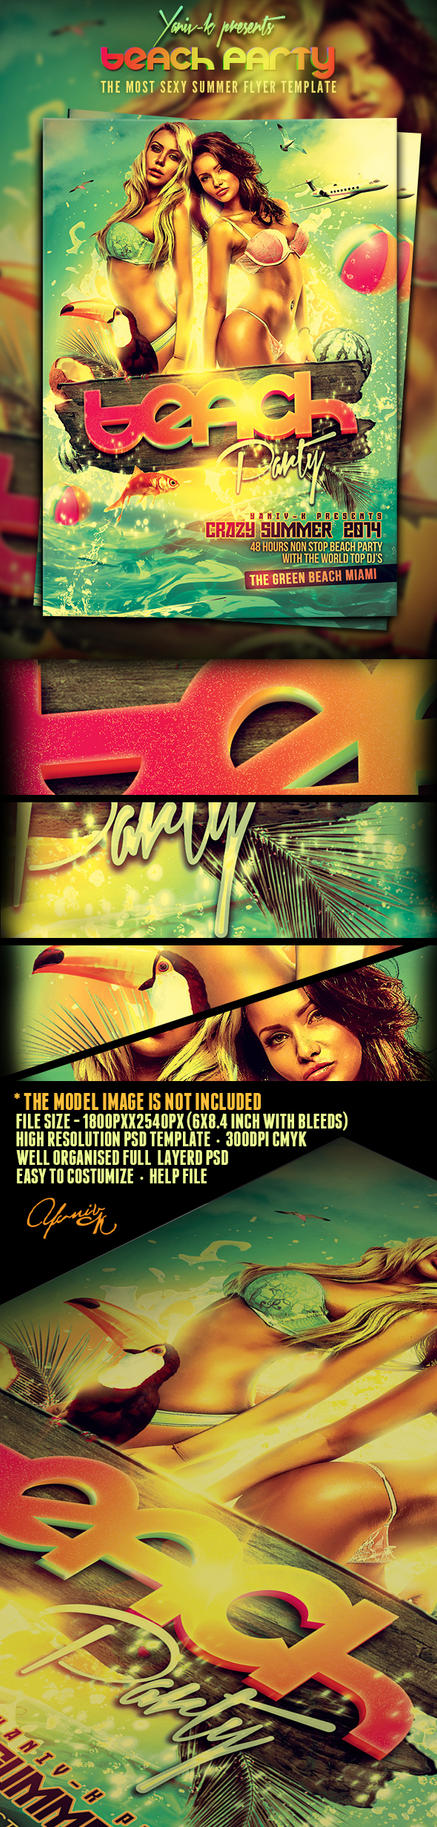 Sexy Beach Party PSD Flyer Template Preview Image by yAniv-k